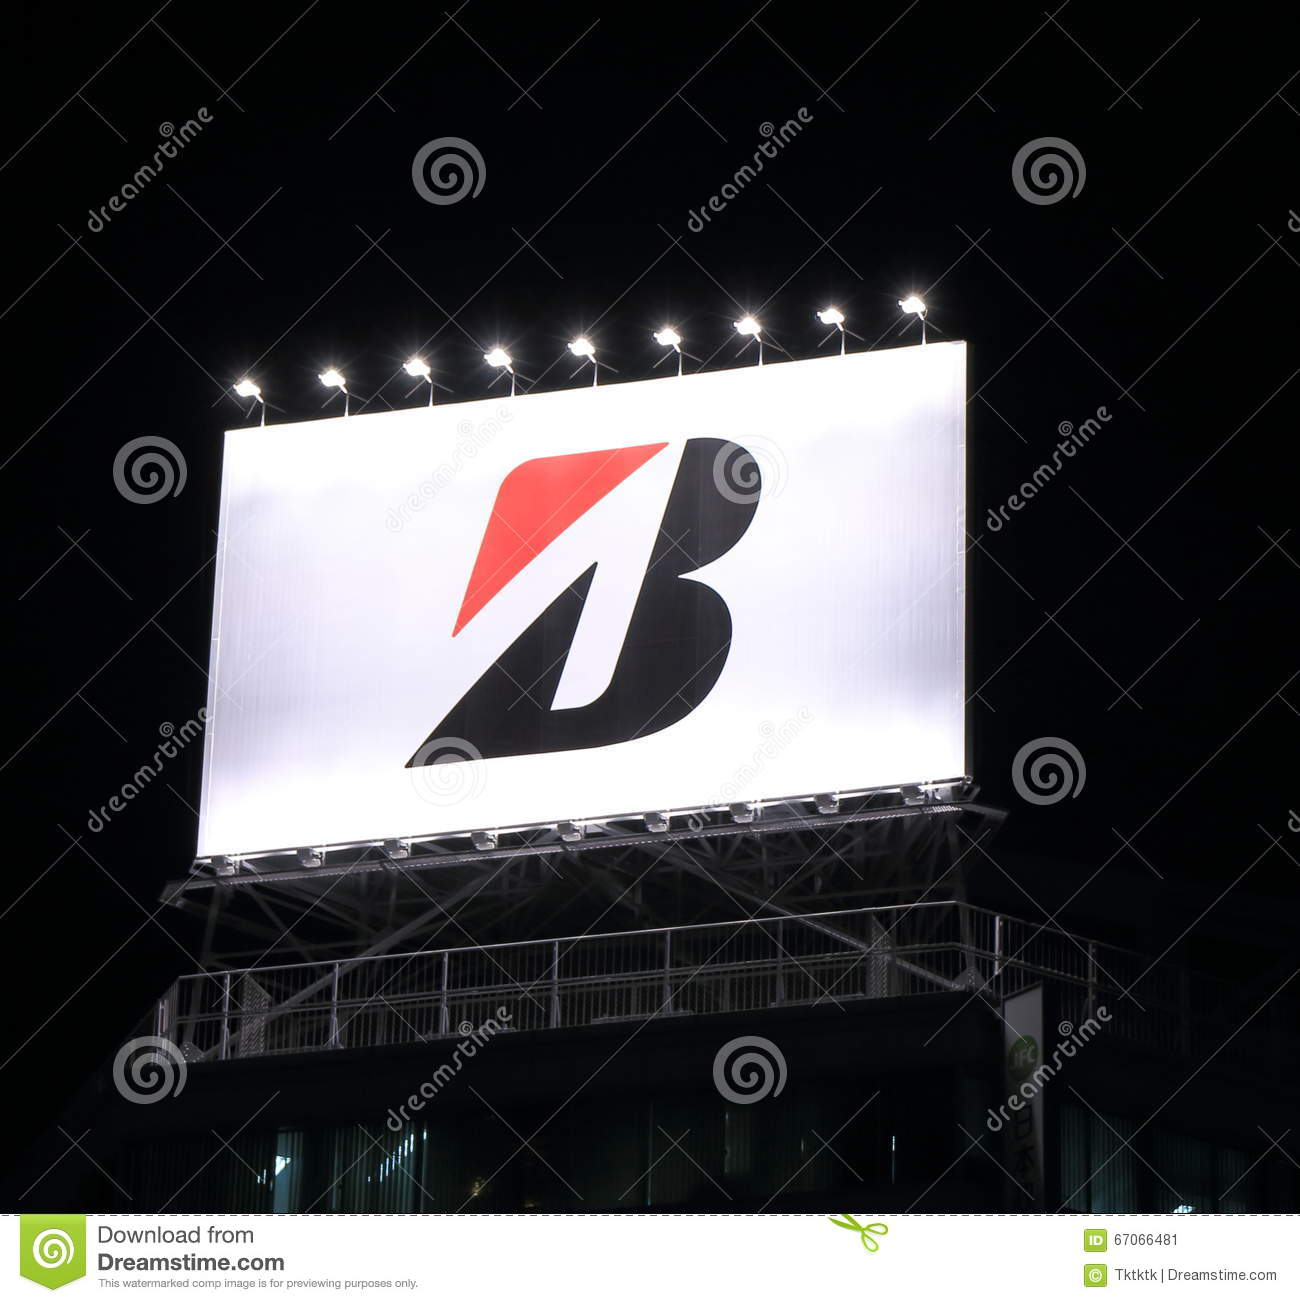 Japanese Automobile Manufacturer >> Bridgestone logo editorial photo. Image of truck, famous - 67066481